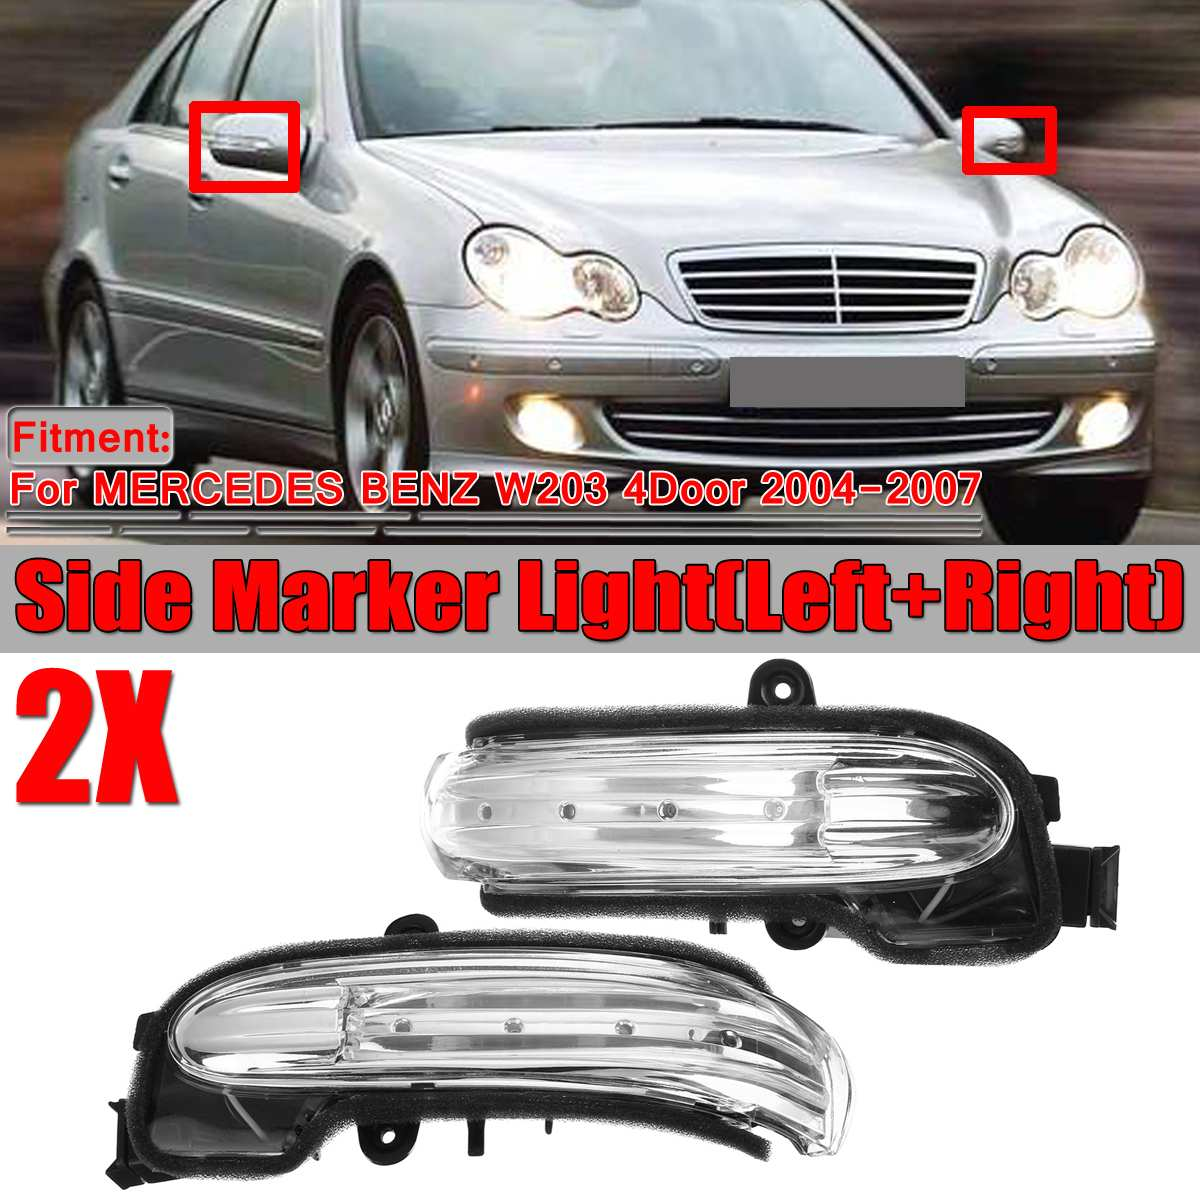 Car Door Wing Side Marker Light Rearview Mirror Turn Signal Indicator Side Light Lamp For Mercedes For Benz W203 4Dr 2004-2007